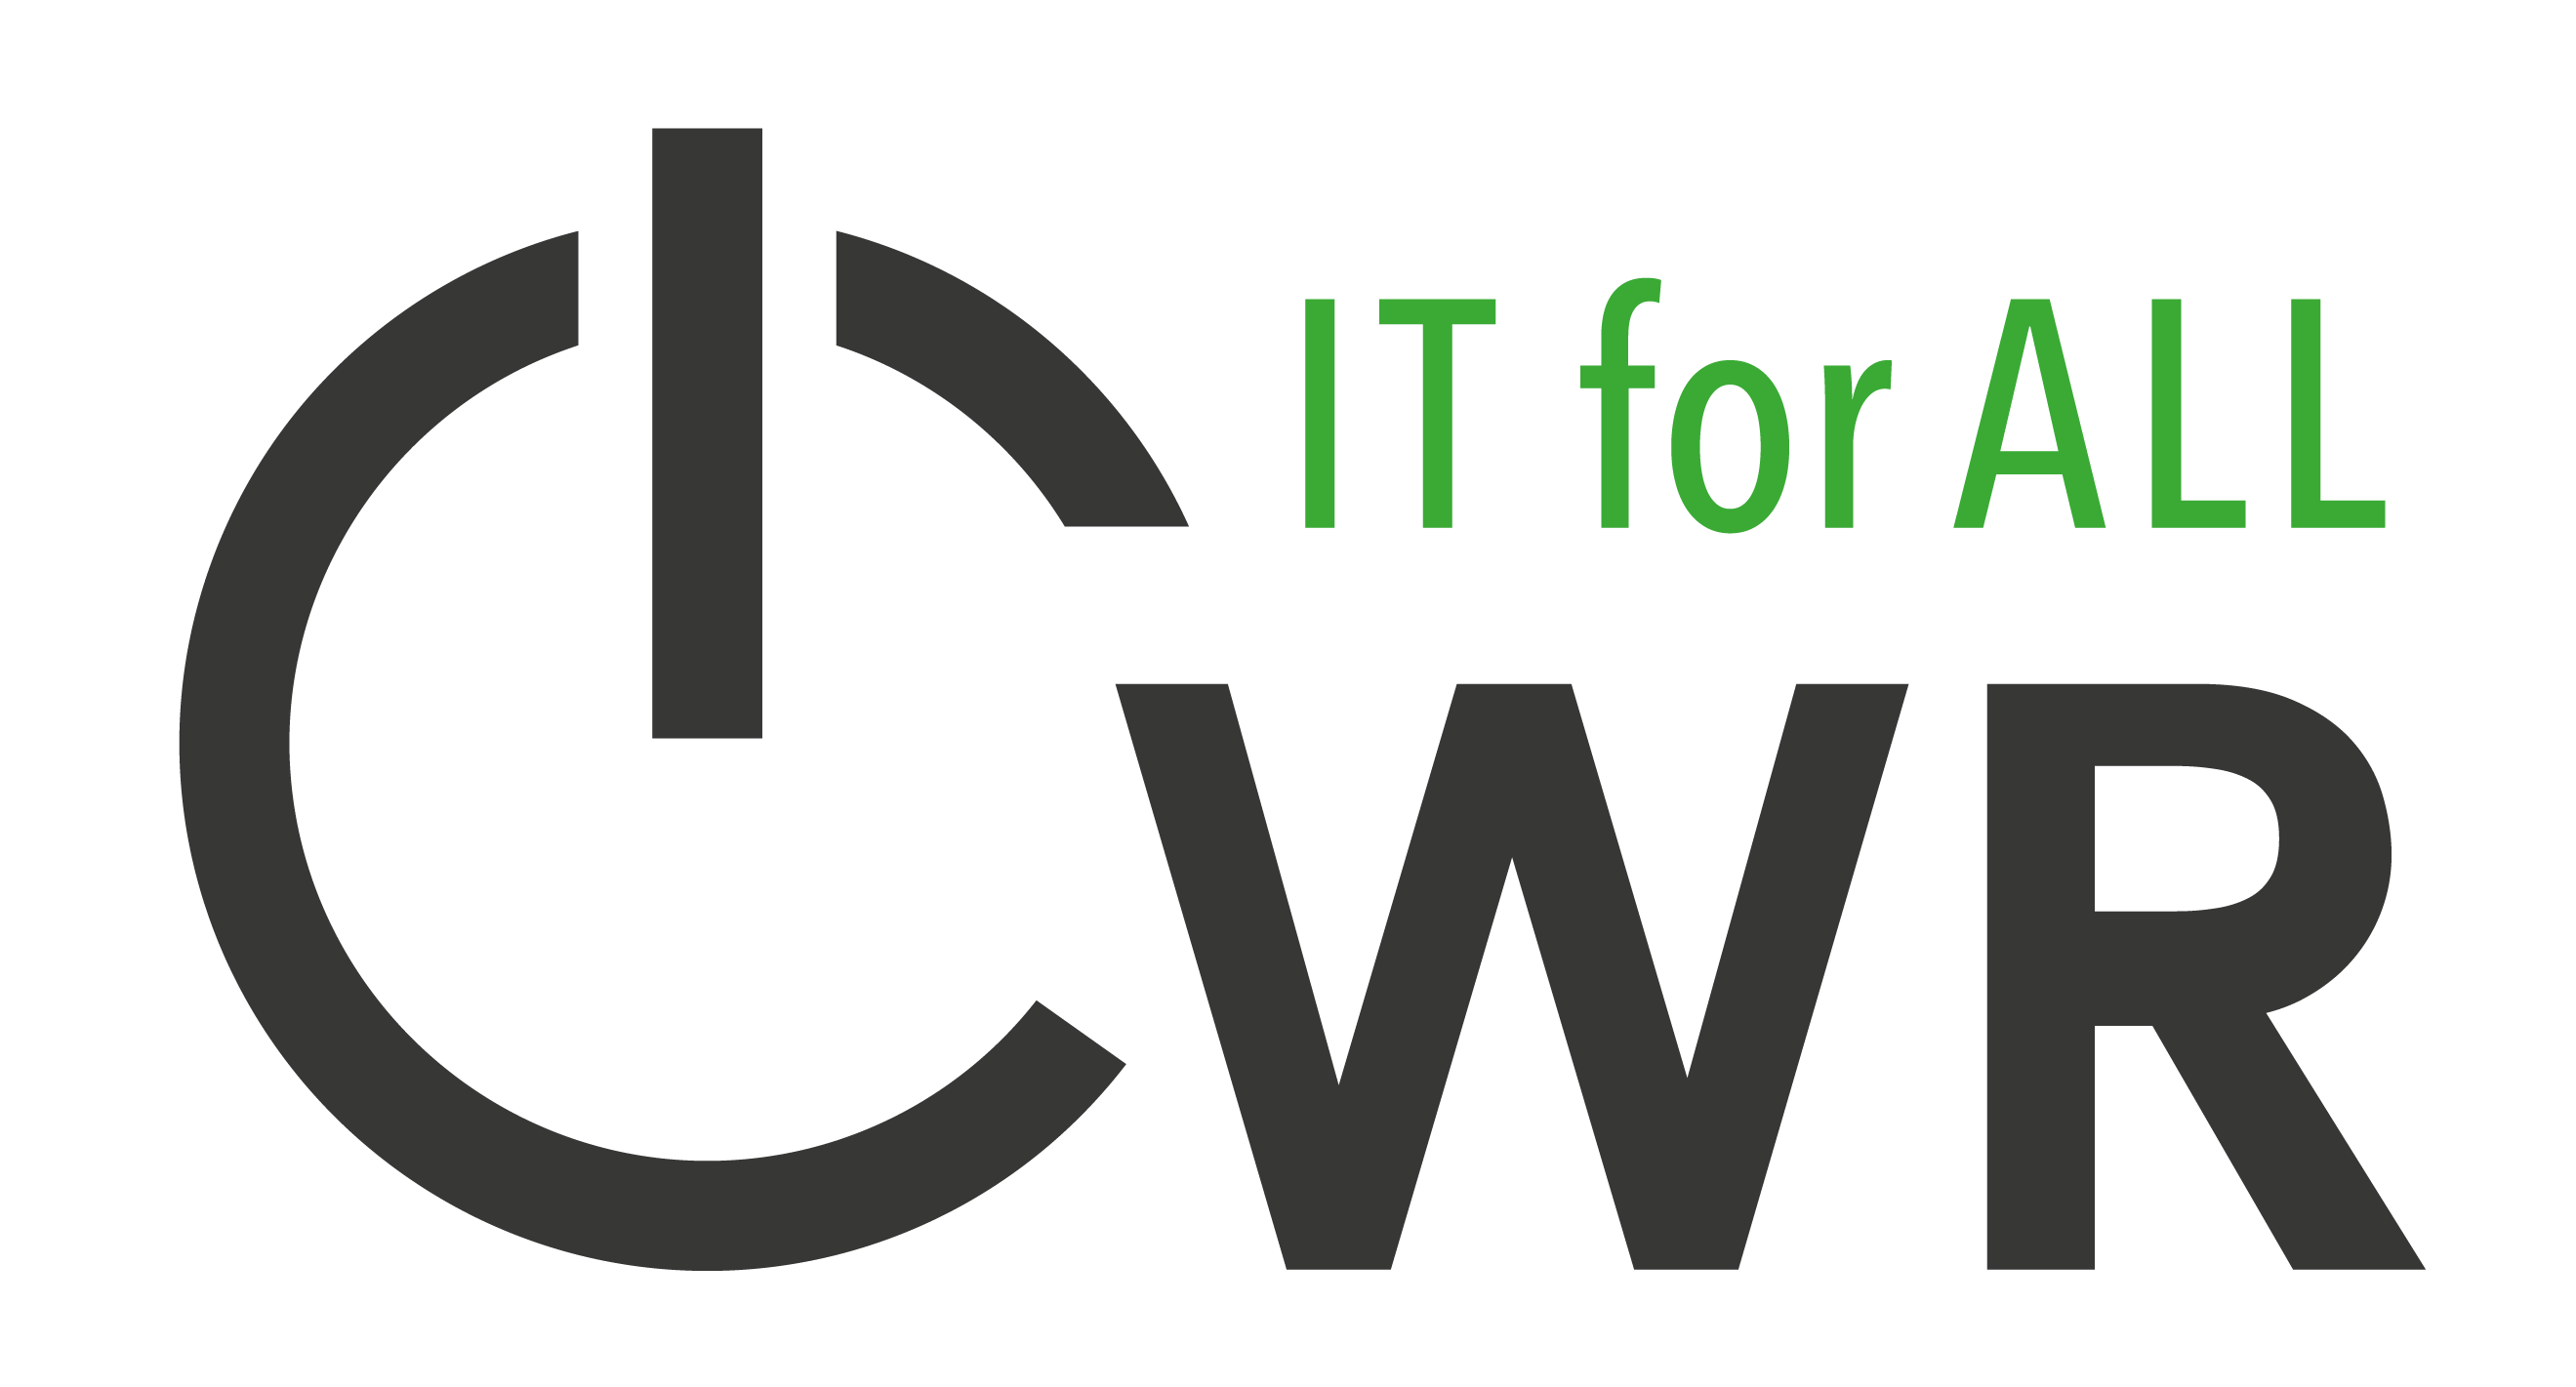 Ciwr | IT for ALL